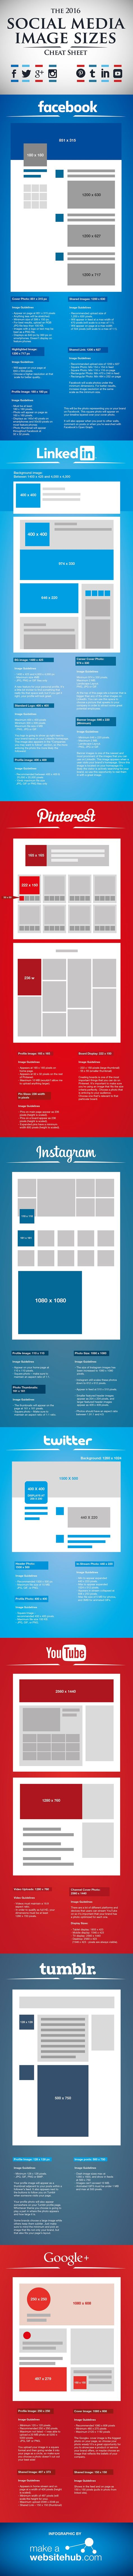 Infographic | Social Media Image Sizes Cheat Sheet